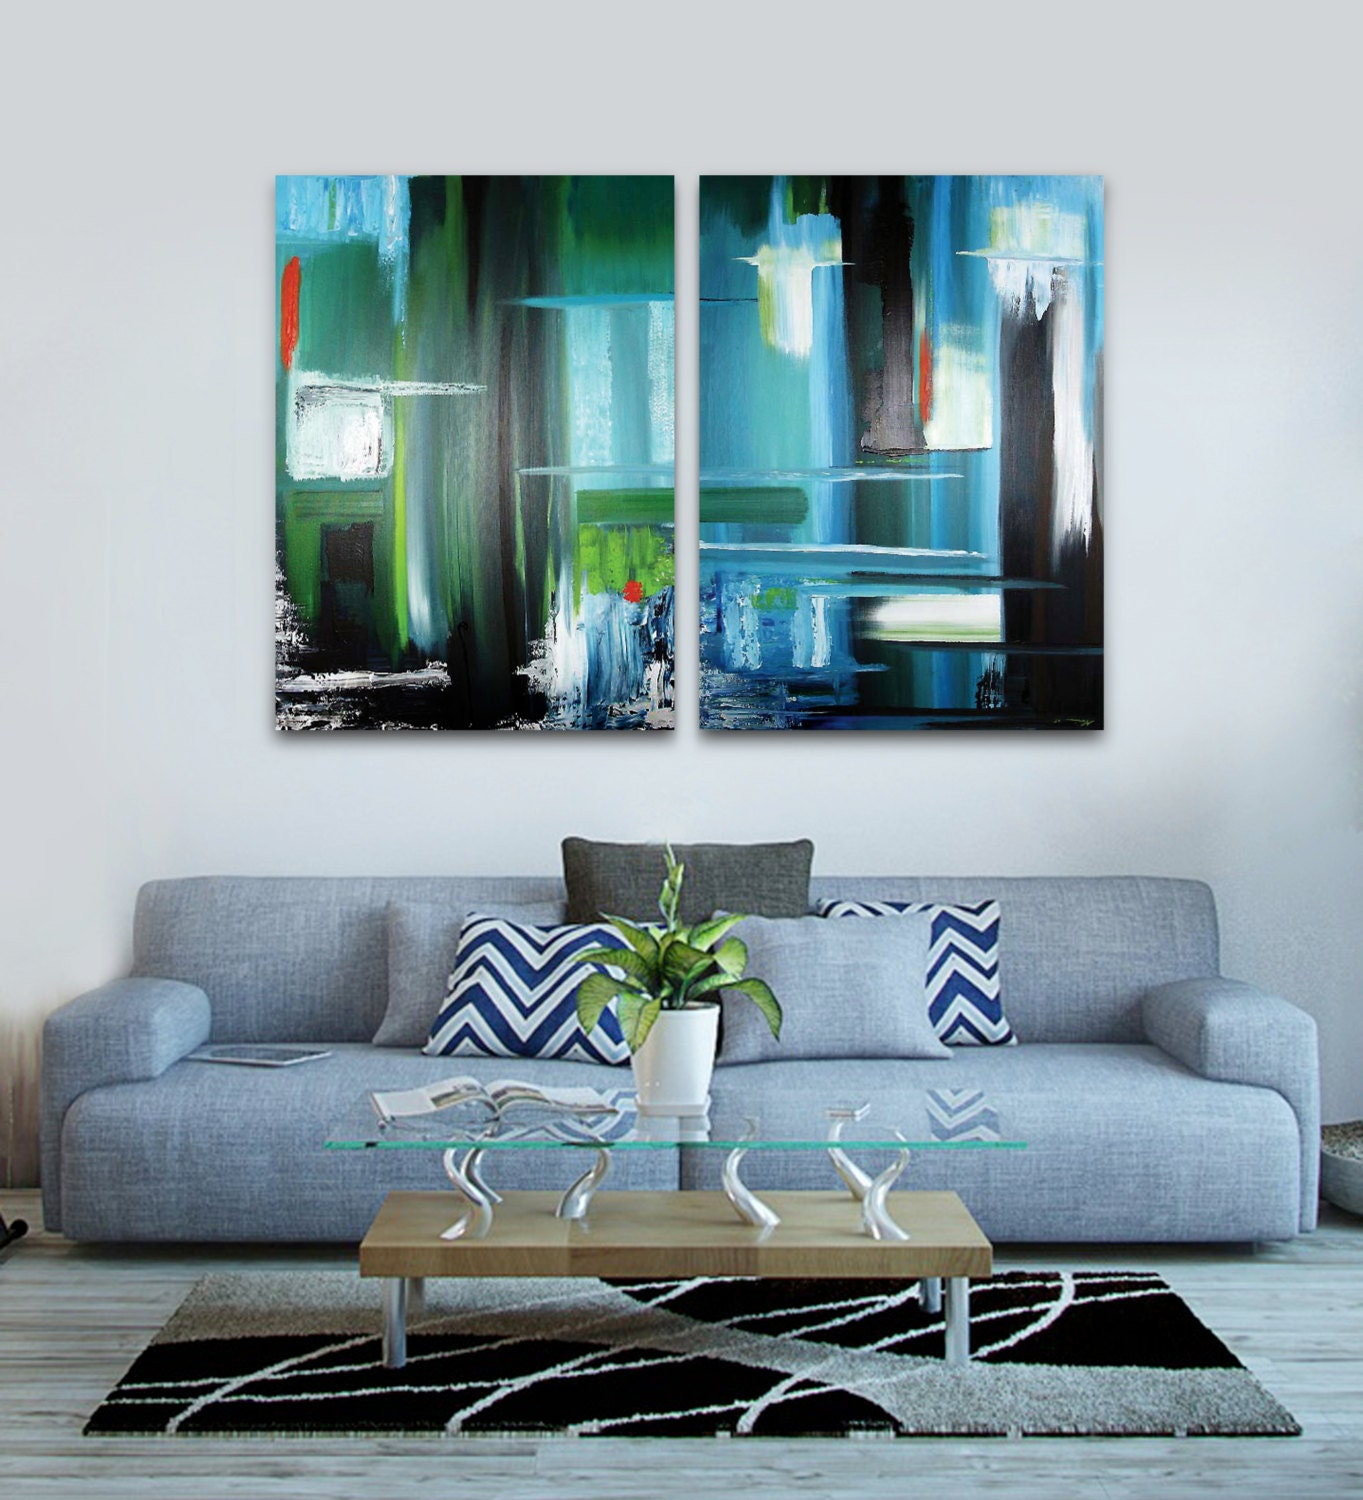 Original Diptic Abstract Painting Handmade Artwork 2 Paintings Contemporary Landscape Modern Artwork Beautiful Wall Decor Art Blue Painting